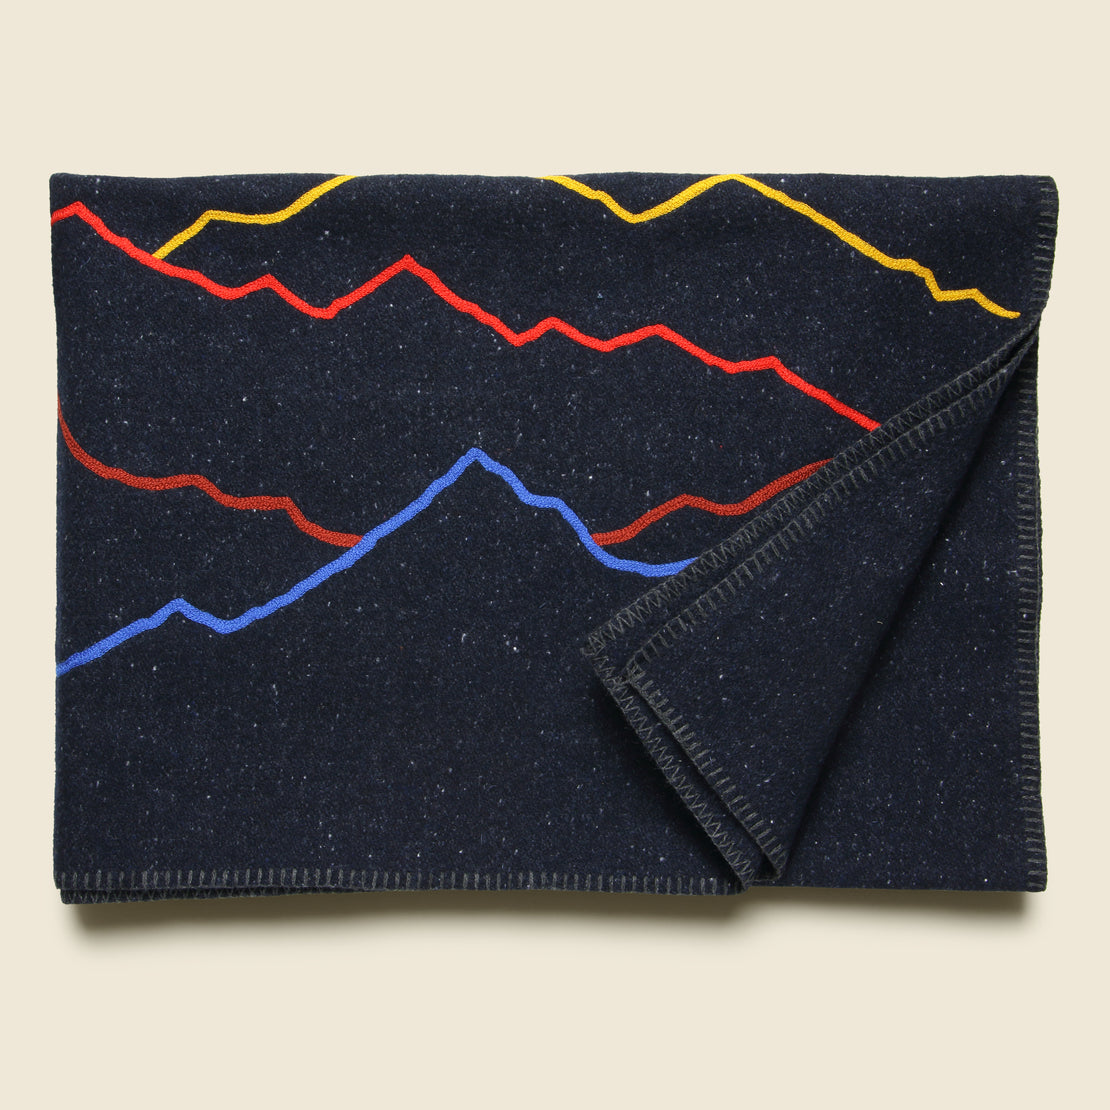 Mountain Landscape Small Utility Blanket - Navy